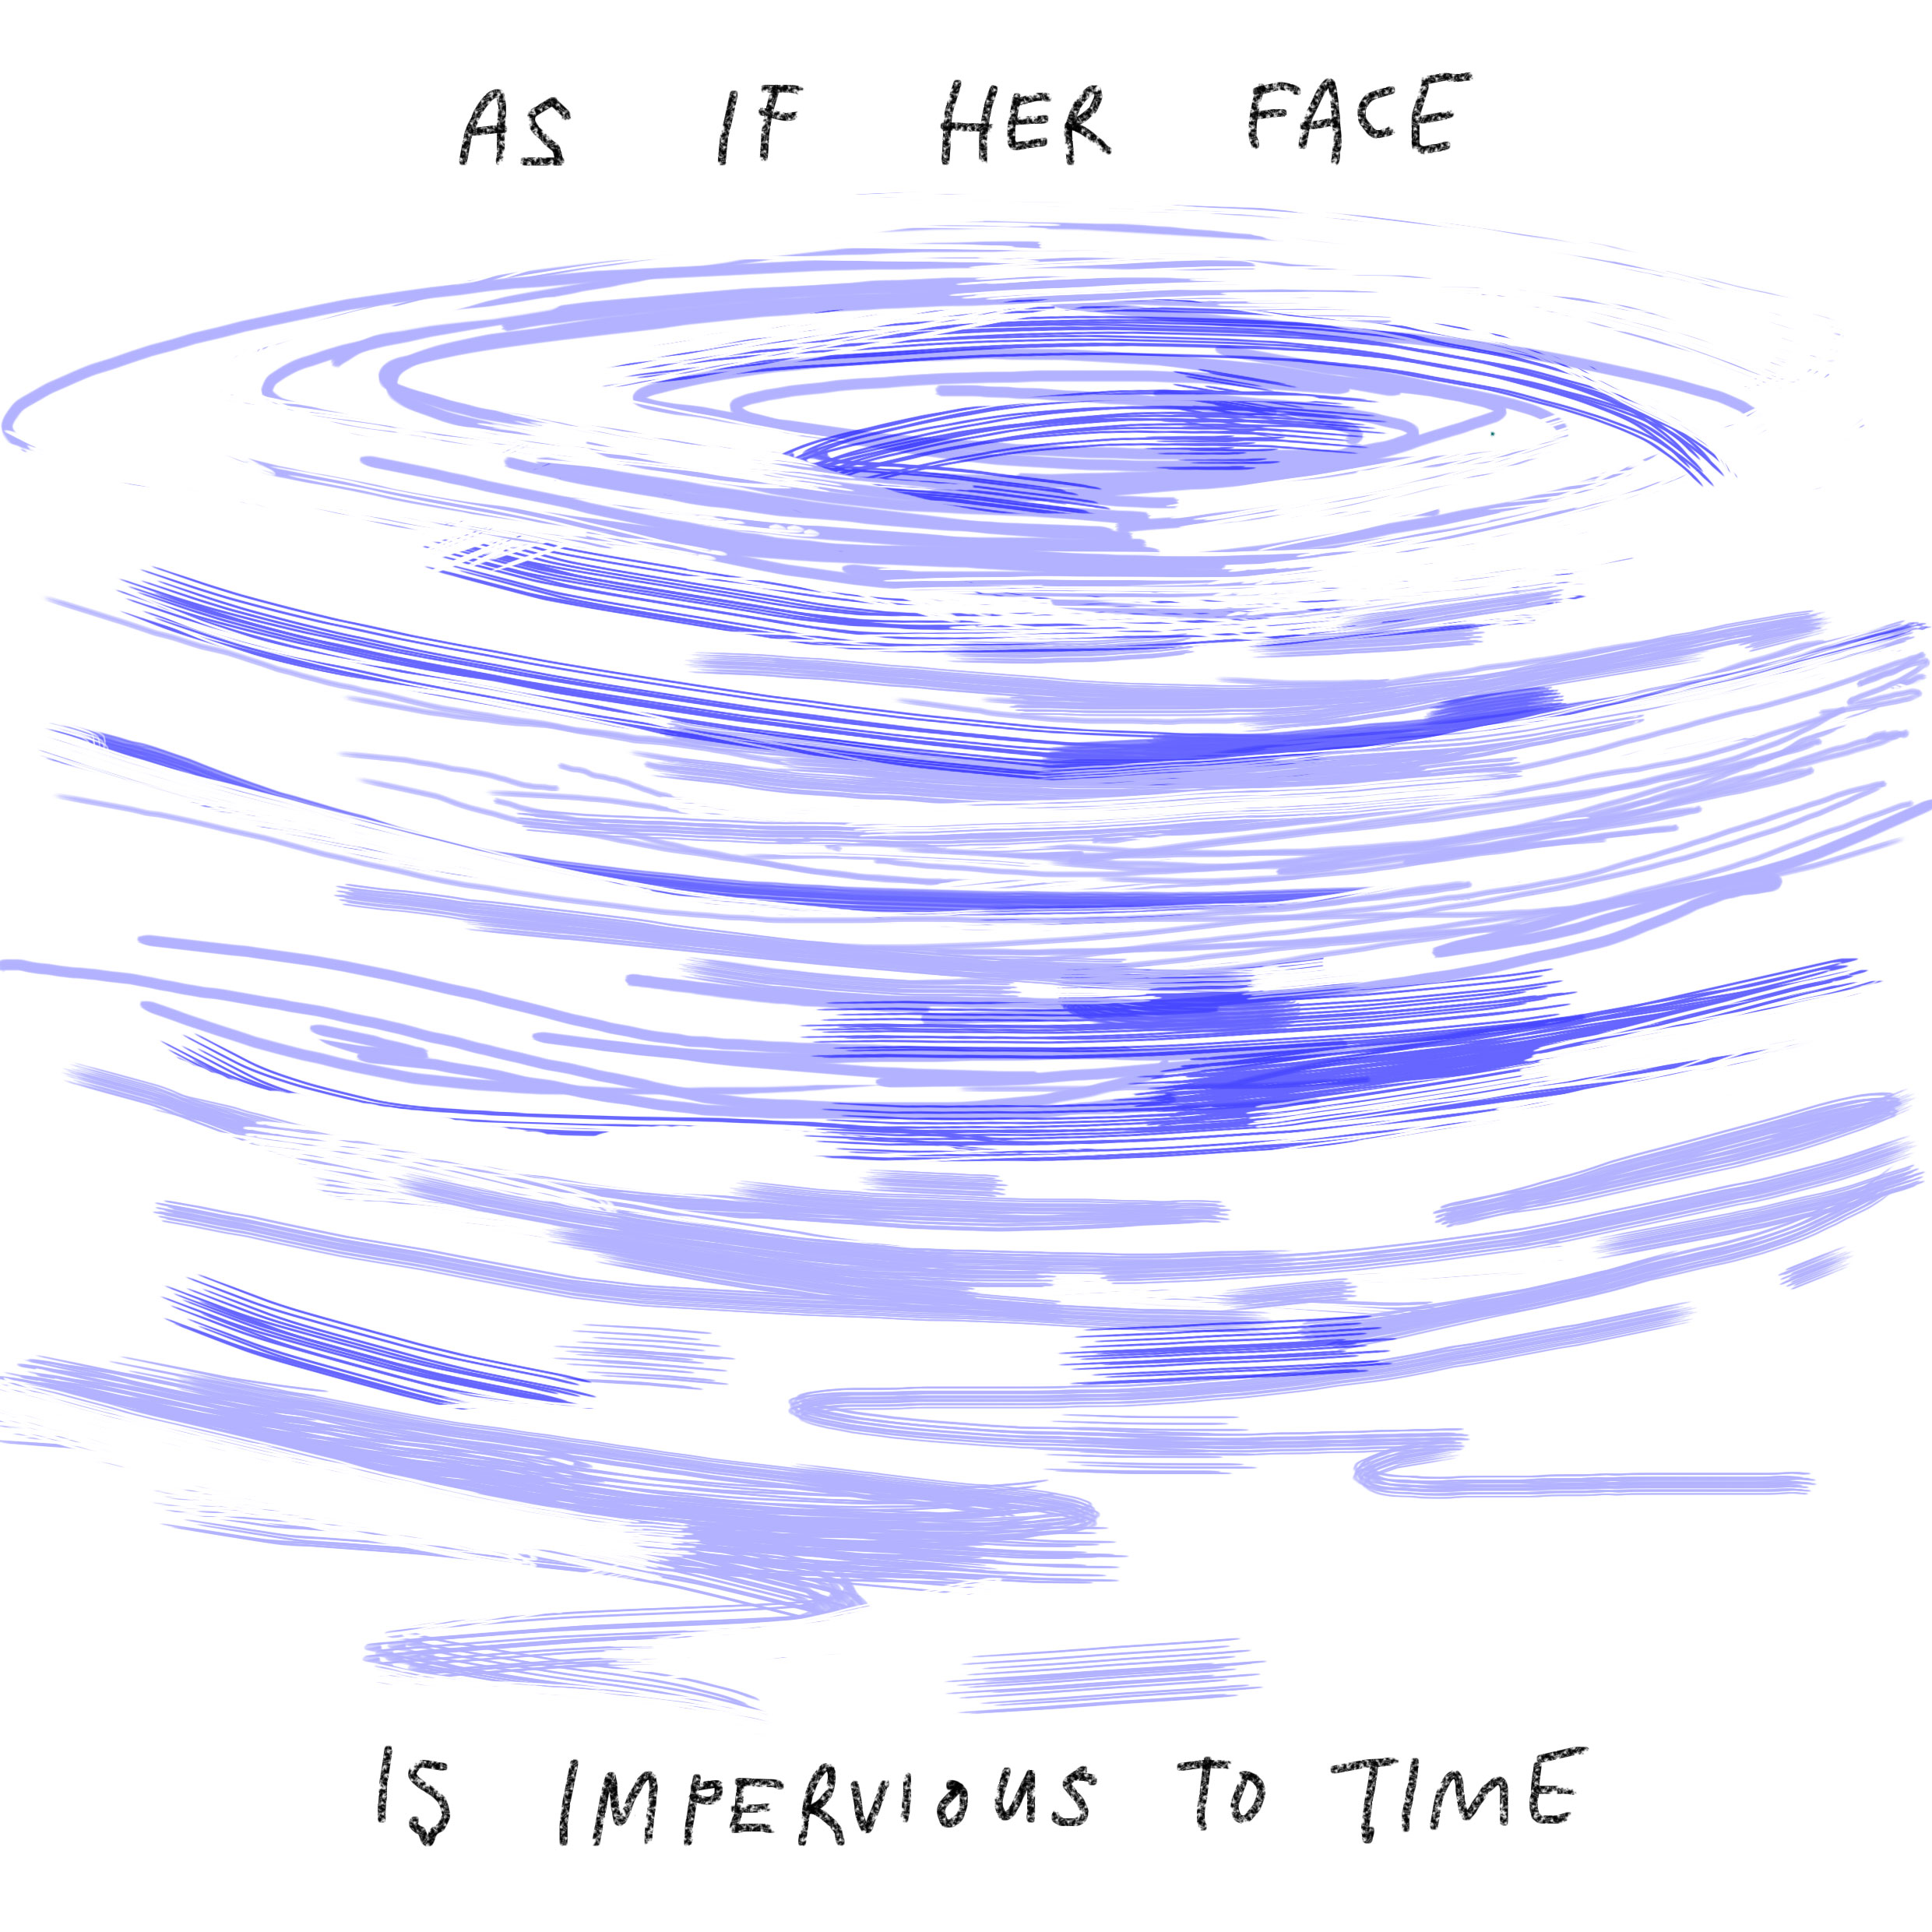 'As if her face is impervious to time.'